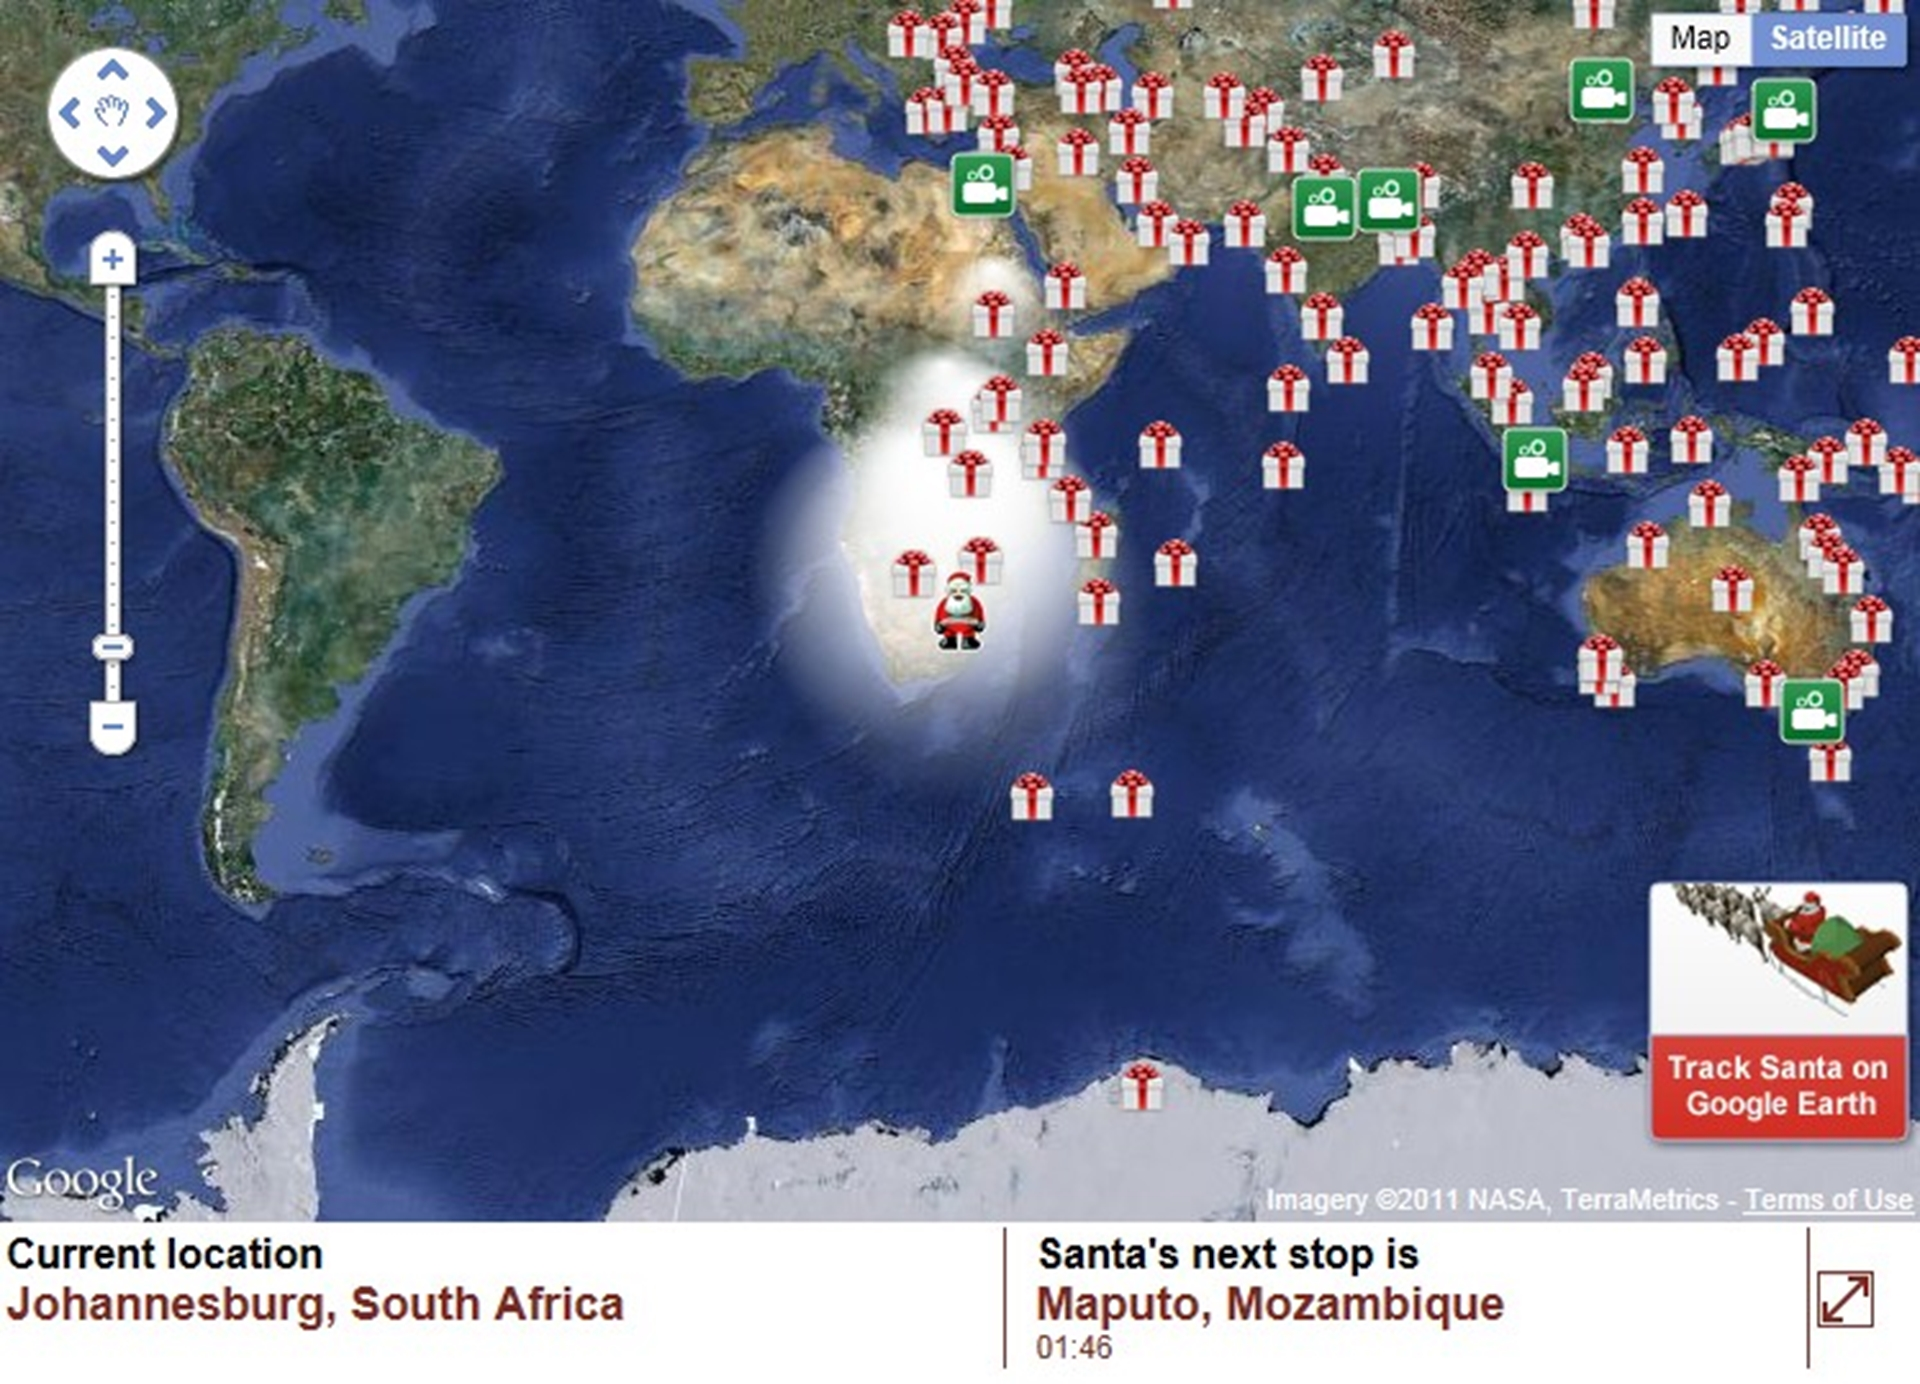 Santa Clause in South Africa